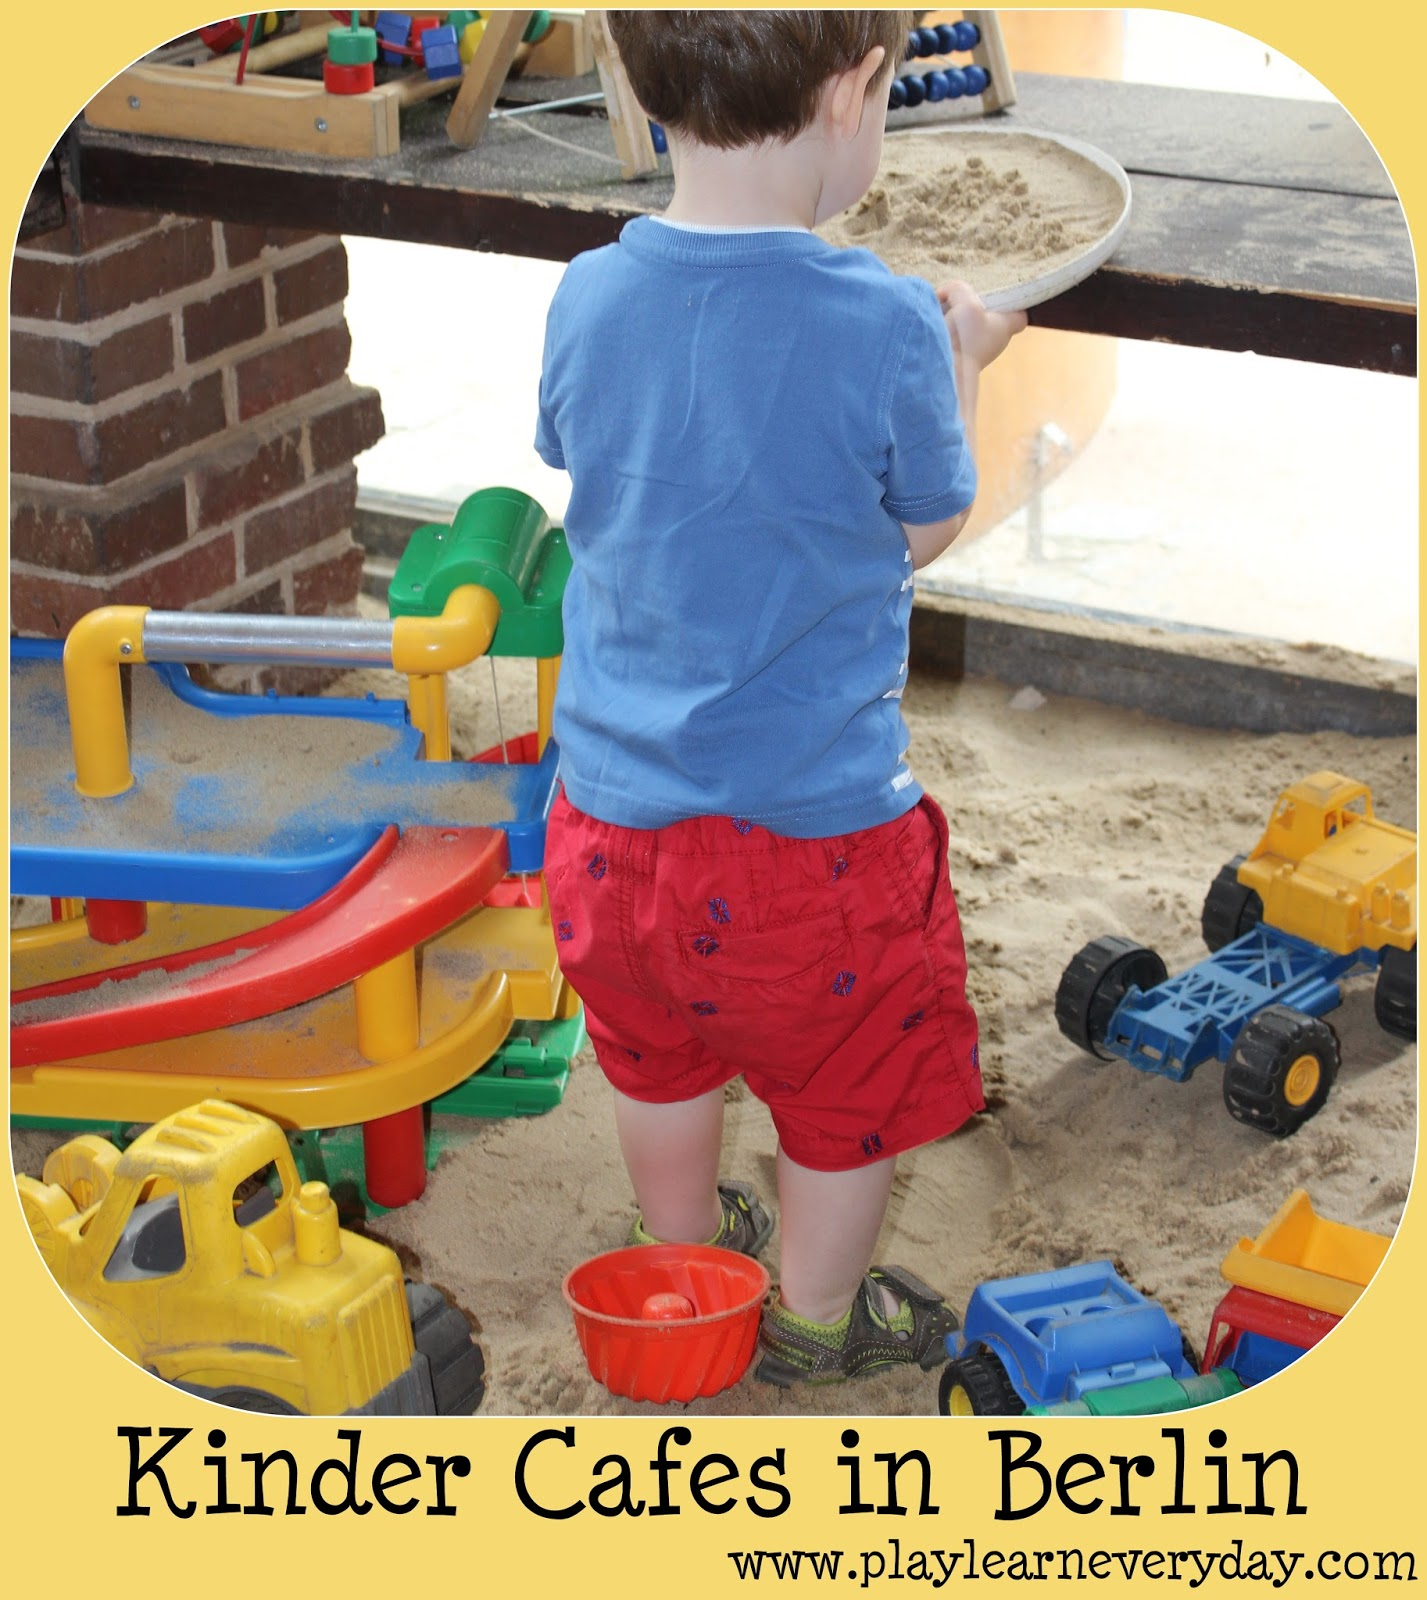 Outdoor Kinder Kinder Cafes Play And Learn Every Day